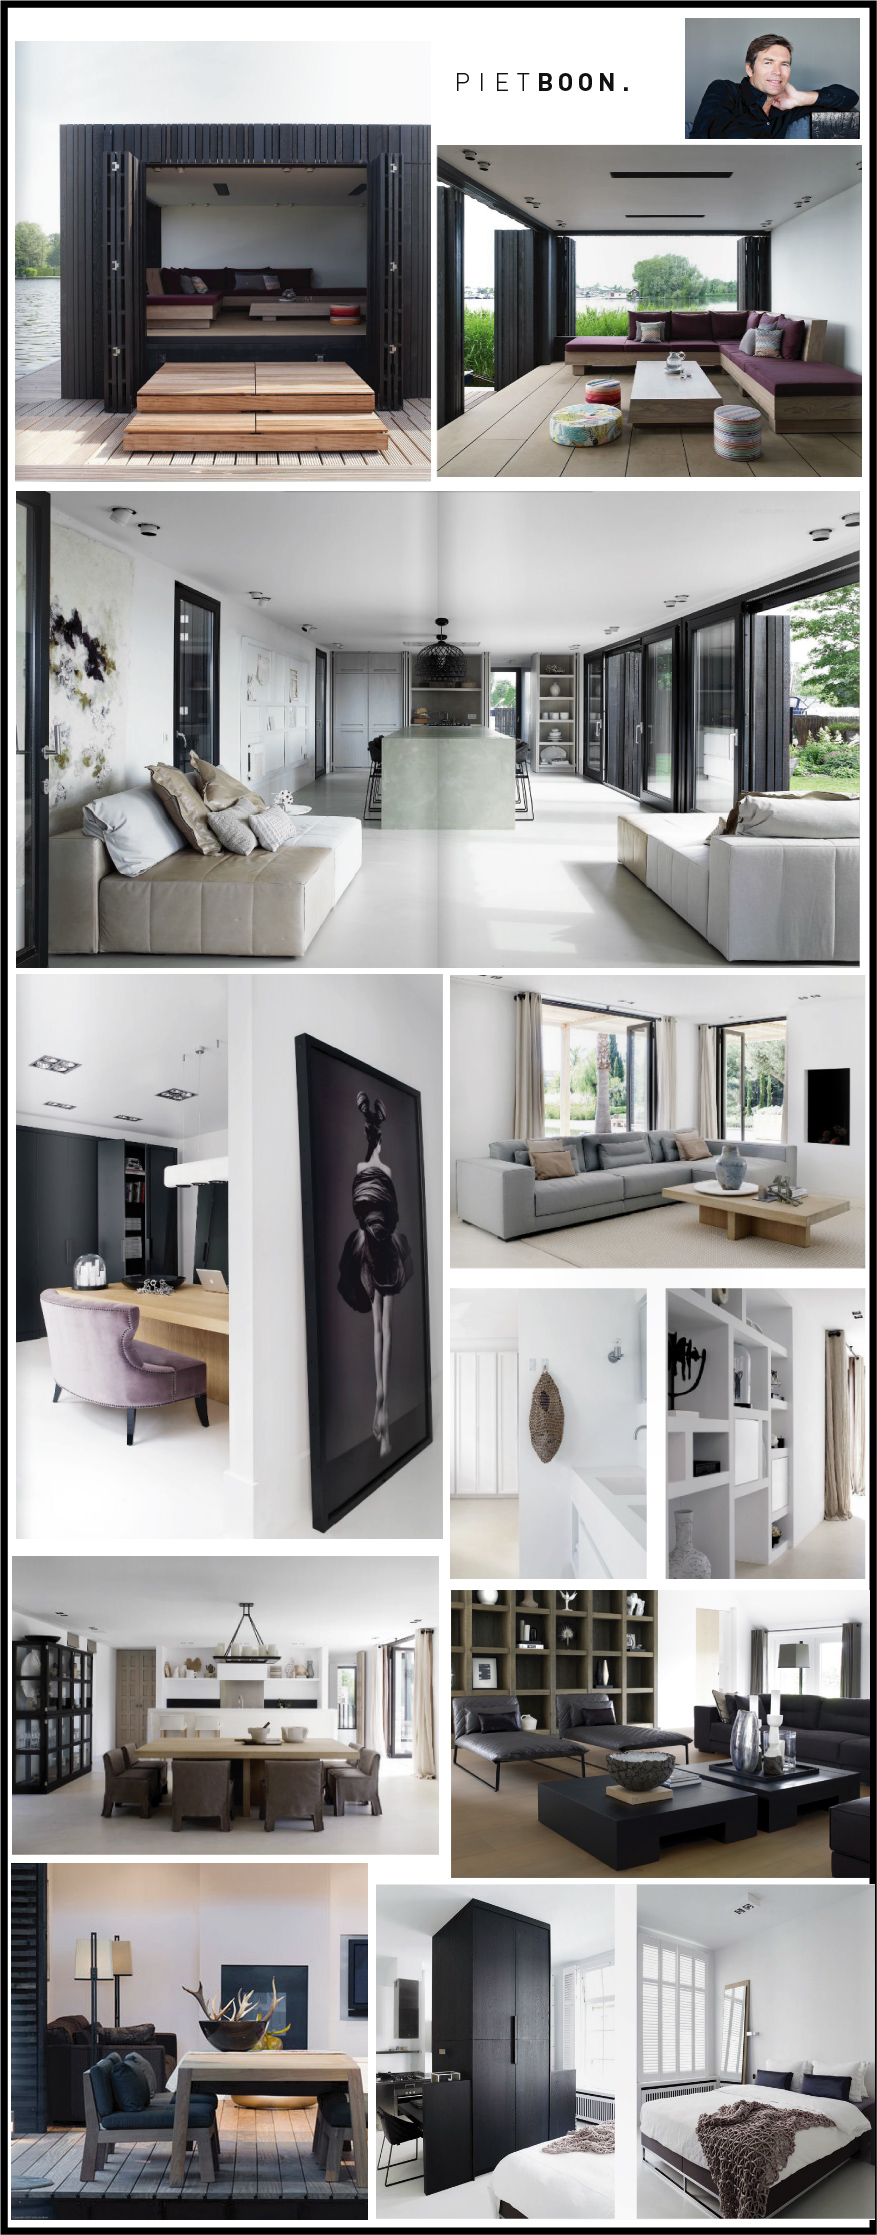 piet boon simple sophistication chiara stella home. Black Bedroom Furniture Sets. Home Design Ideas